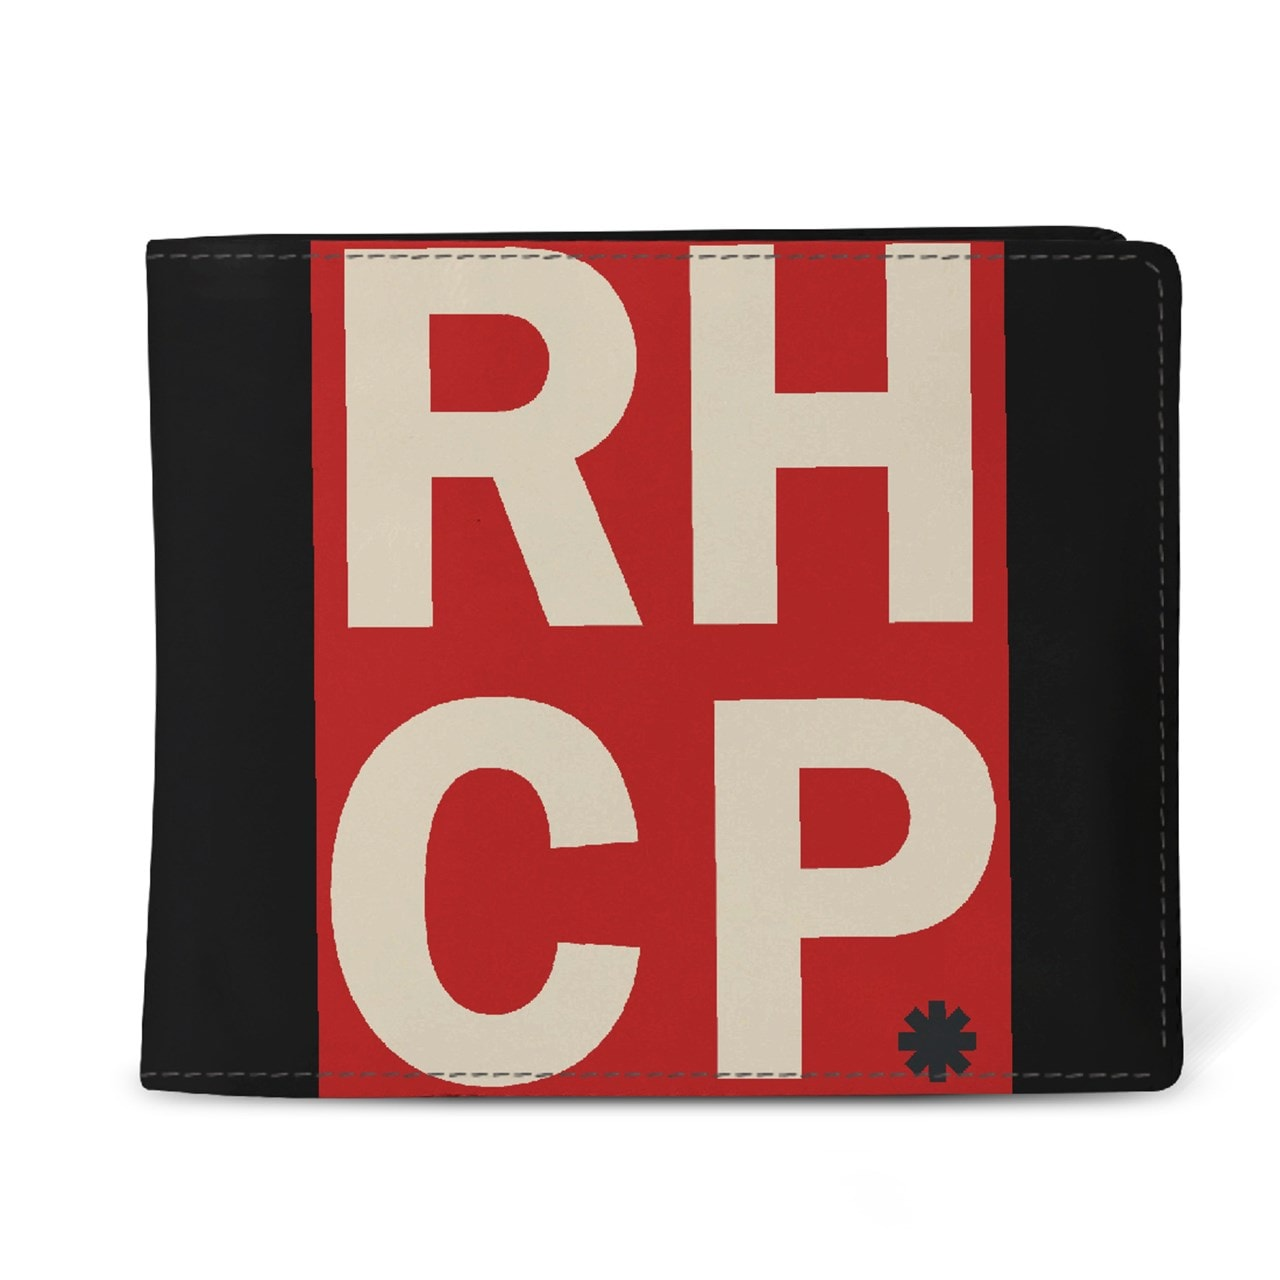 Red Hot Chili Peppers Wallet - 1